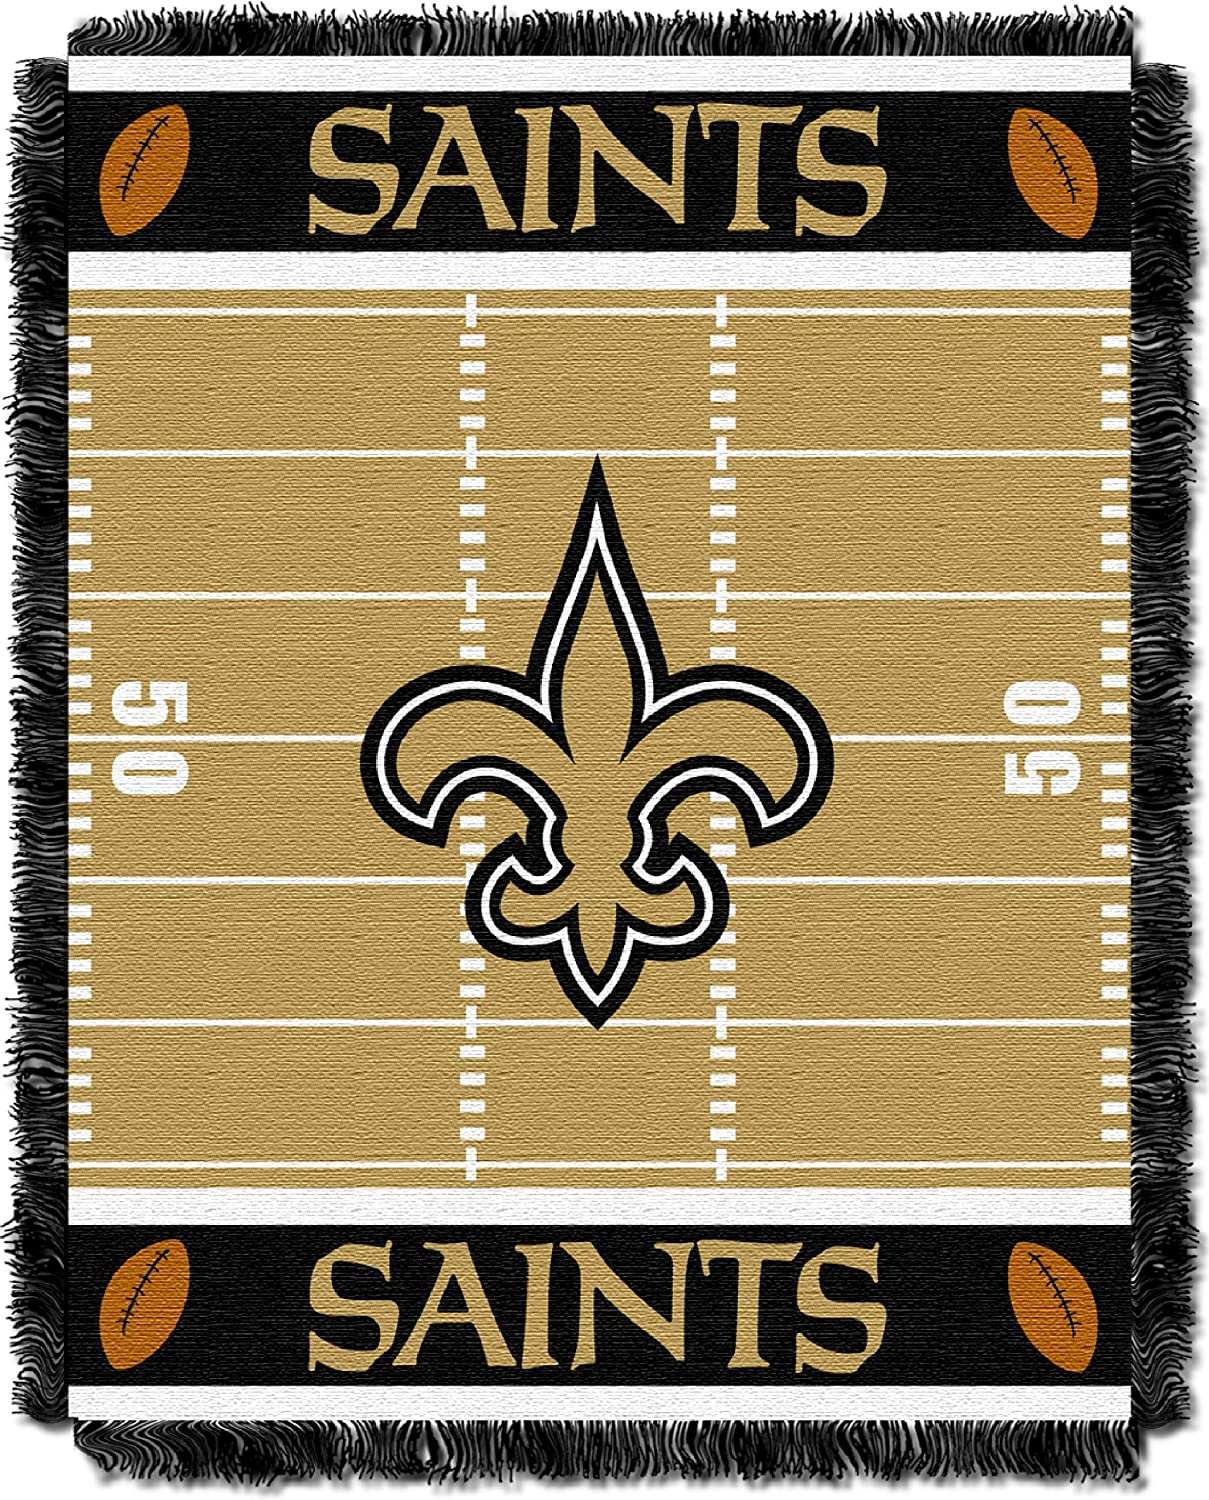 Officially Licensed NFL Field Woven Jacquard Baby Throw Blanket Multi Color 36 x 46